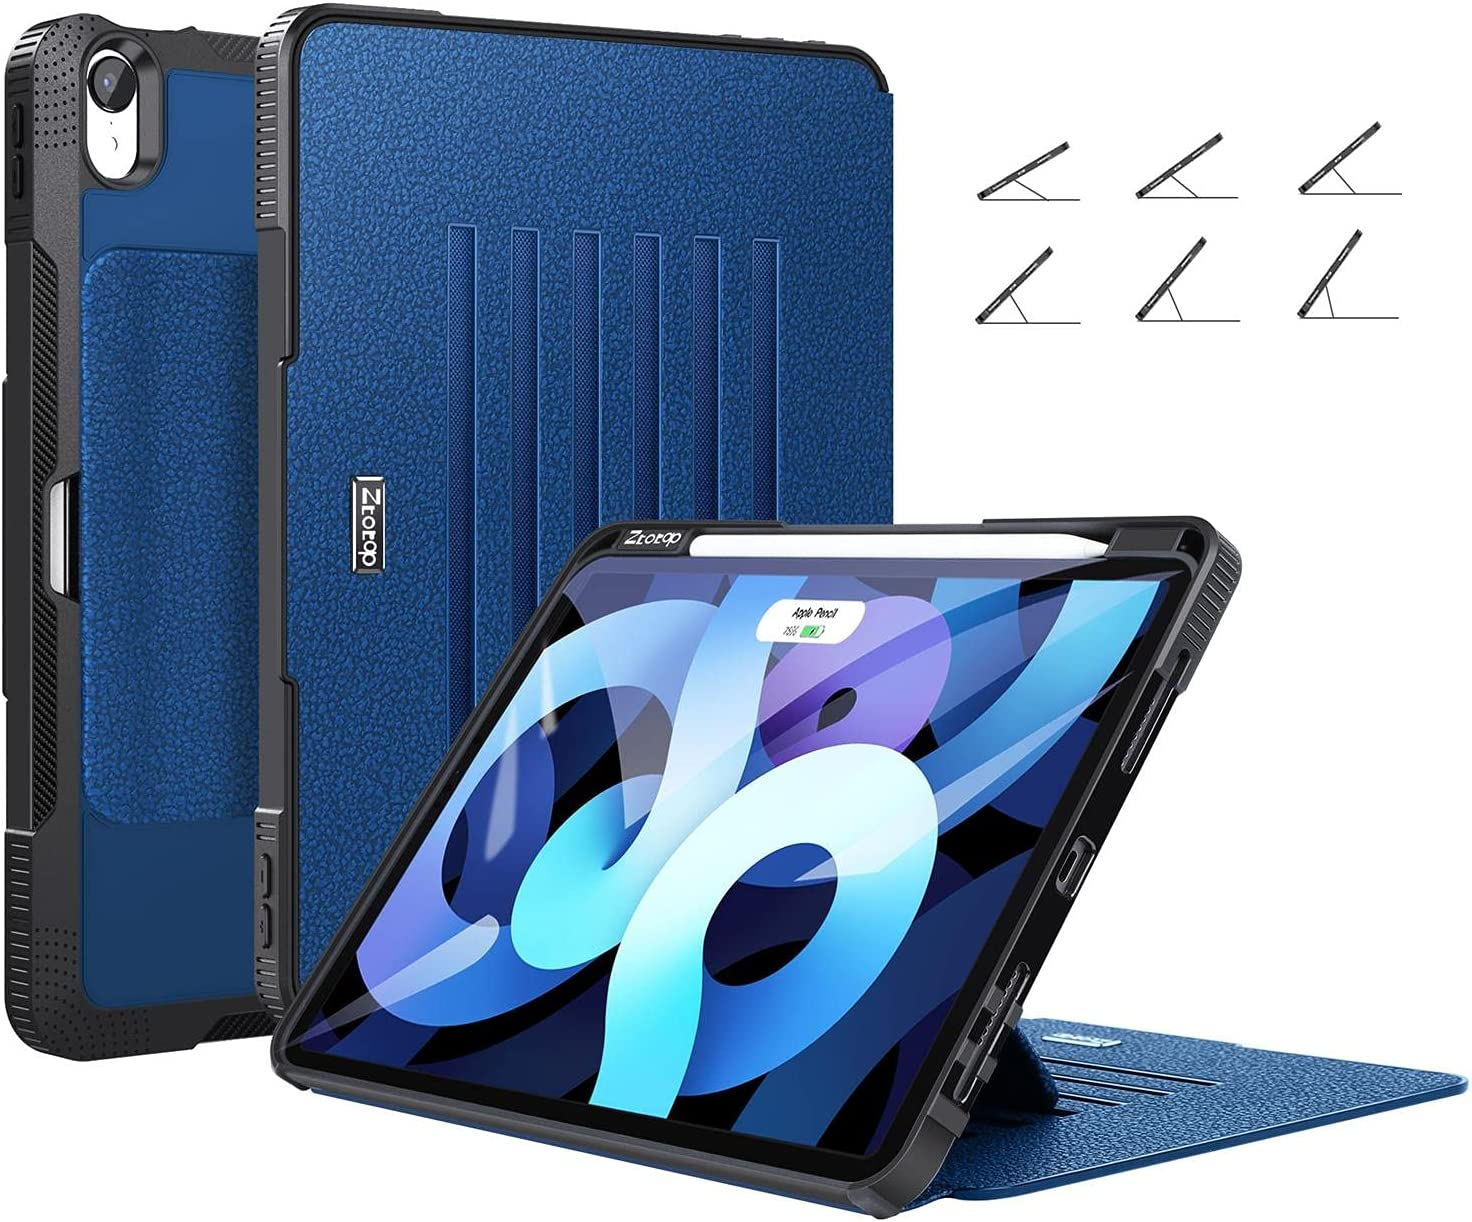 ZtotopCases for New iPad Air 4 Case 10.9 Inch 2020, [6 Magnetic Stand + Pencil Holder + Auto Wake/Sleep] Full Body Protective Cover Case for iPad Air 4th Generation, Blue